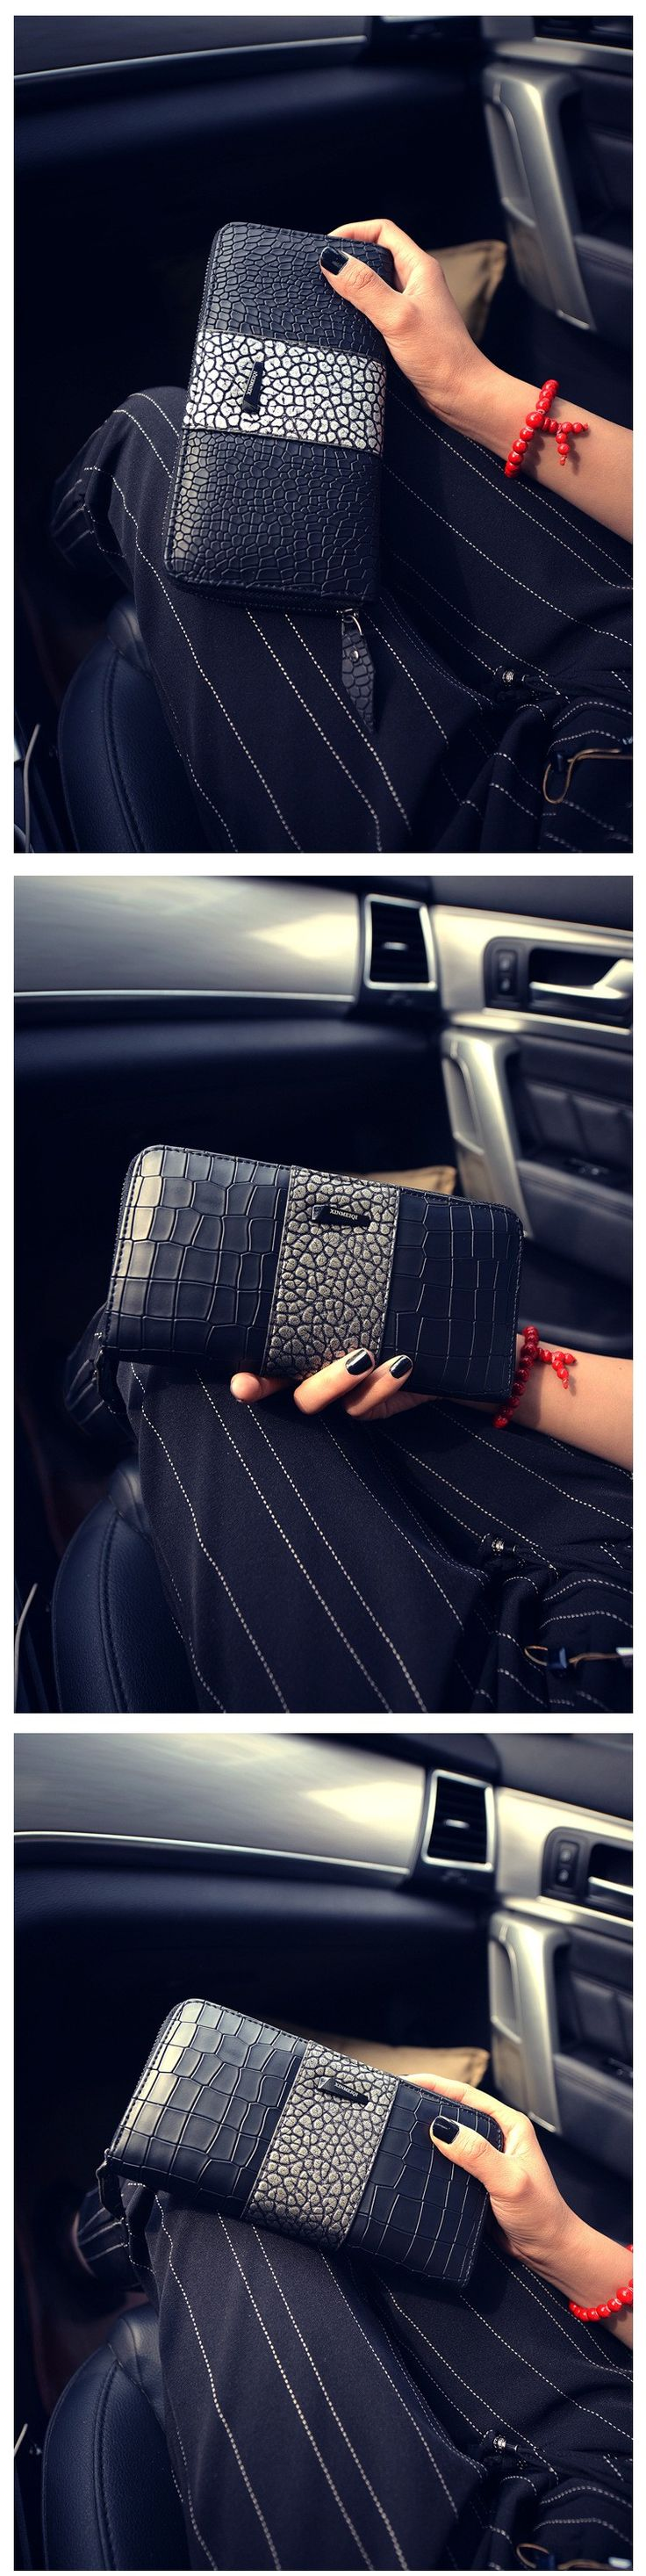 Ms. wallet female long section of the new zipper wallet fashion wallet women wallet card hand bag phone package women's purse , https://kitmybag.com/ms-wallet-female-long-section-of-the-new-zipper-wallet-fashion-wallet-women-wallet-card-hand-bag-phone-package-womens-purse/ ,  Check more at https://kitmybag.com/ms-wallet-female-long-section-of-the-new-zipper-wallet-fashion-wallet-women-wallet-card-hand-bag-phone-package-womens-purse/